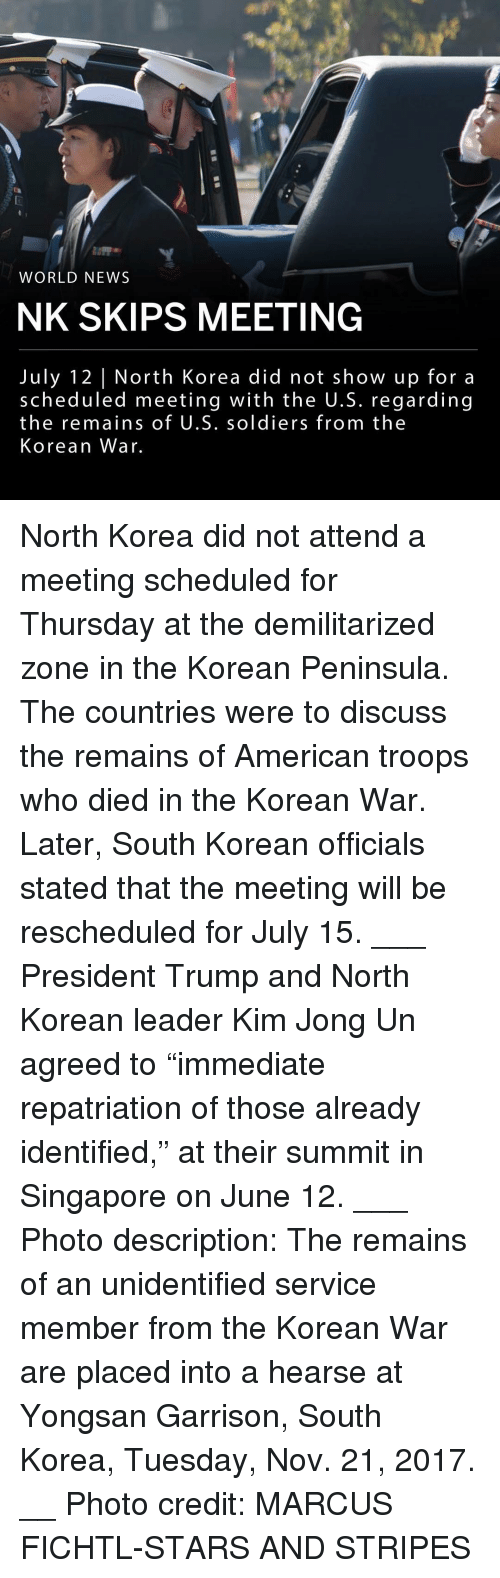 """Kim Jong-Un, Memes, and News: WORLD NEWS  NK SKIPS MEETING  July 12 North Korea did not show up for a  scheduled meeting with the U.S. regarding  the remains of U.S. soldiers from the  Korean War. North Korea did not attend a meeting scheduled for Thursday at the demilitarized zone in the Korean Peninsula. The countries were to discuss the remains of American troops who died in the Korean War. Later, South Korean officials stated that the meeting will be rescheduled for July 15. ___ President Trump and North Korean leader Kim Jong Un agreed to """"immediate repatriation of those already identified,"""" at their summit in Singapore on June 12. ___ Photo description: The remains of an unidentified service member from the Korean War are placed into a hearse at Yongsan Garrison, South Korea, Tuesday, Nov. 21, 2017. __ Photo credit: MARCUS FICHTL-STARS AND STRIPES"""